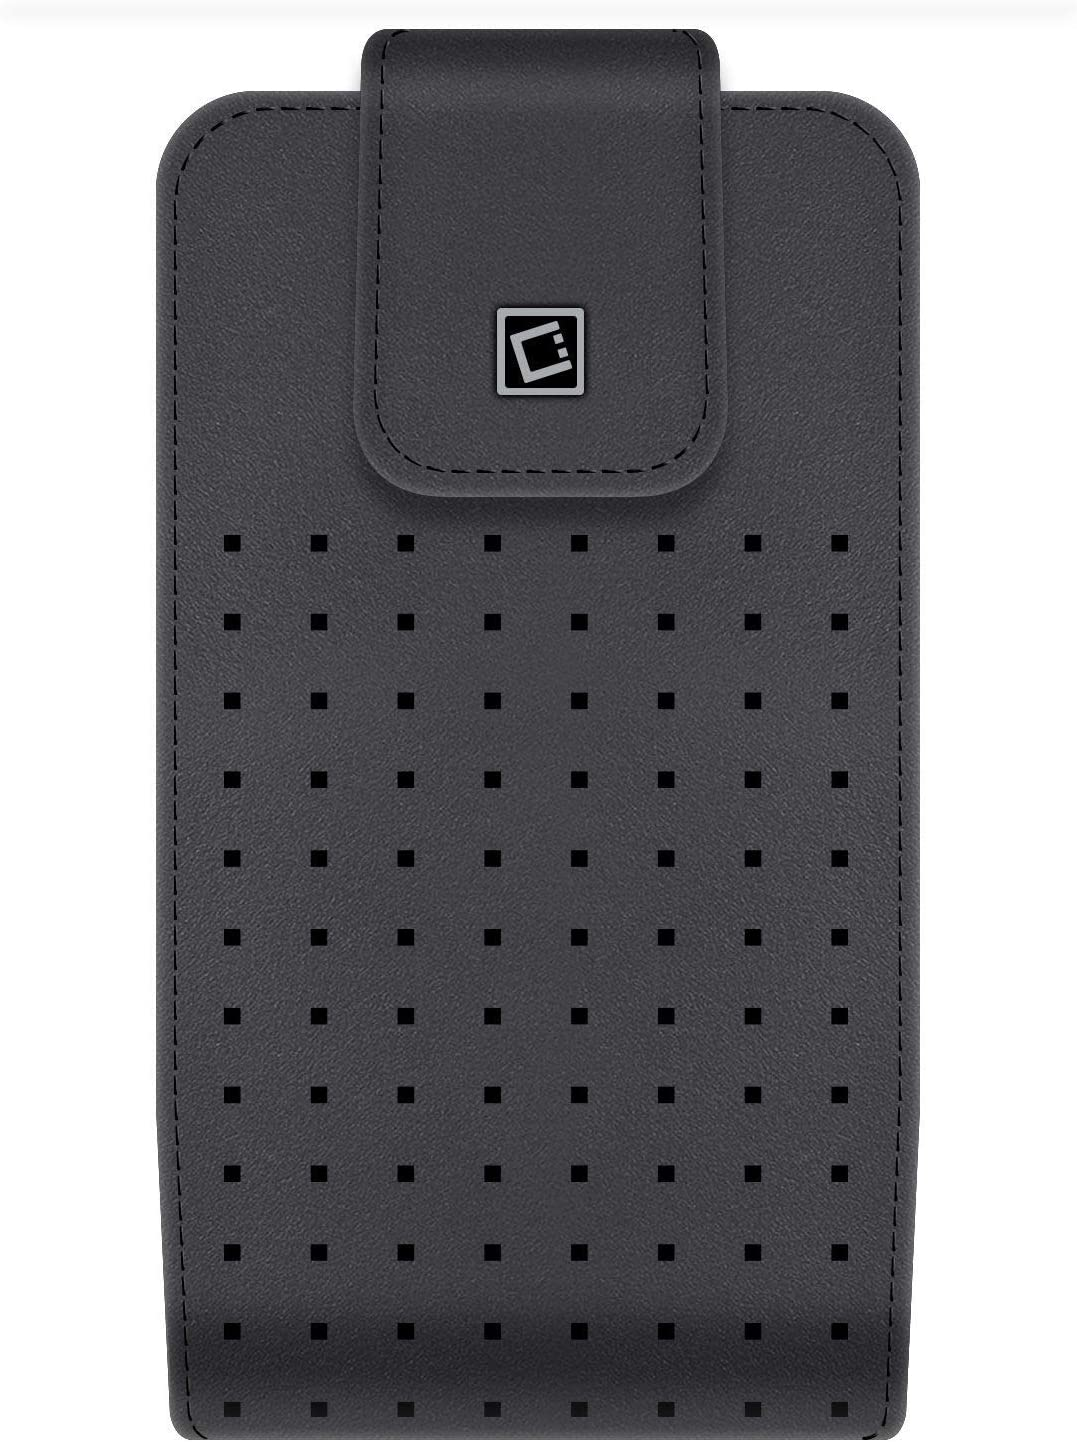 Cellet Teramo Holster Compatible with Samsung Galaxy A71- PU Classic Leather Vertical Belt Clip Phone Holder Pouch Case with Secure Magnetic Flip Cover, Swivel Clip and Atom Wipe - Black